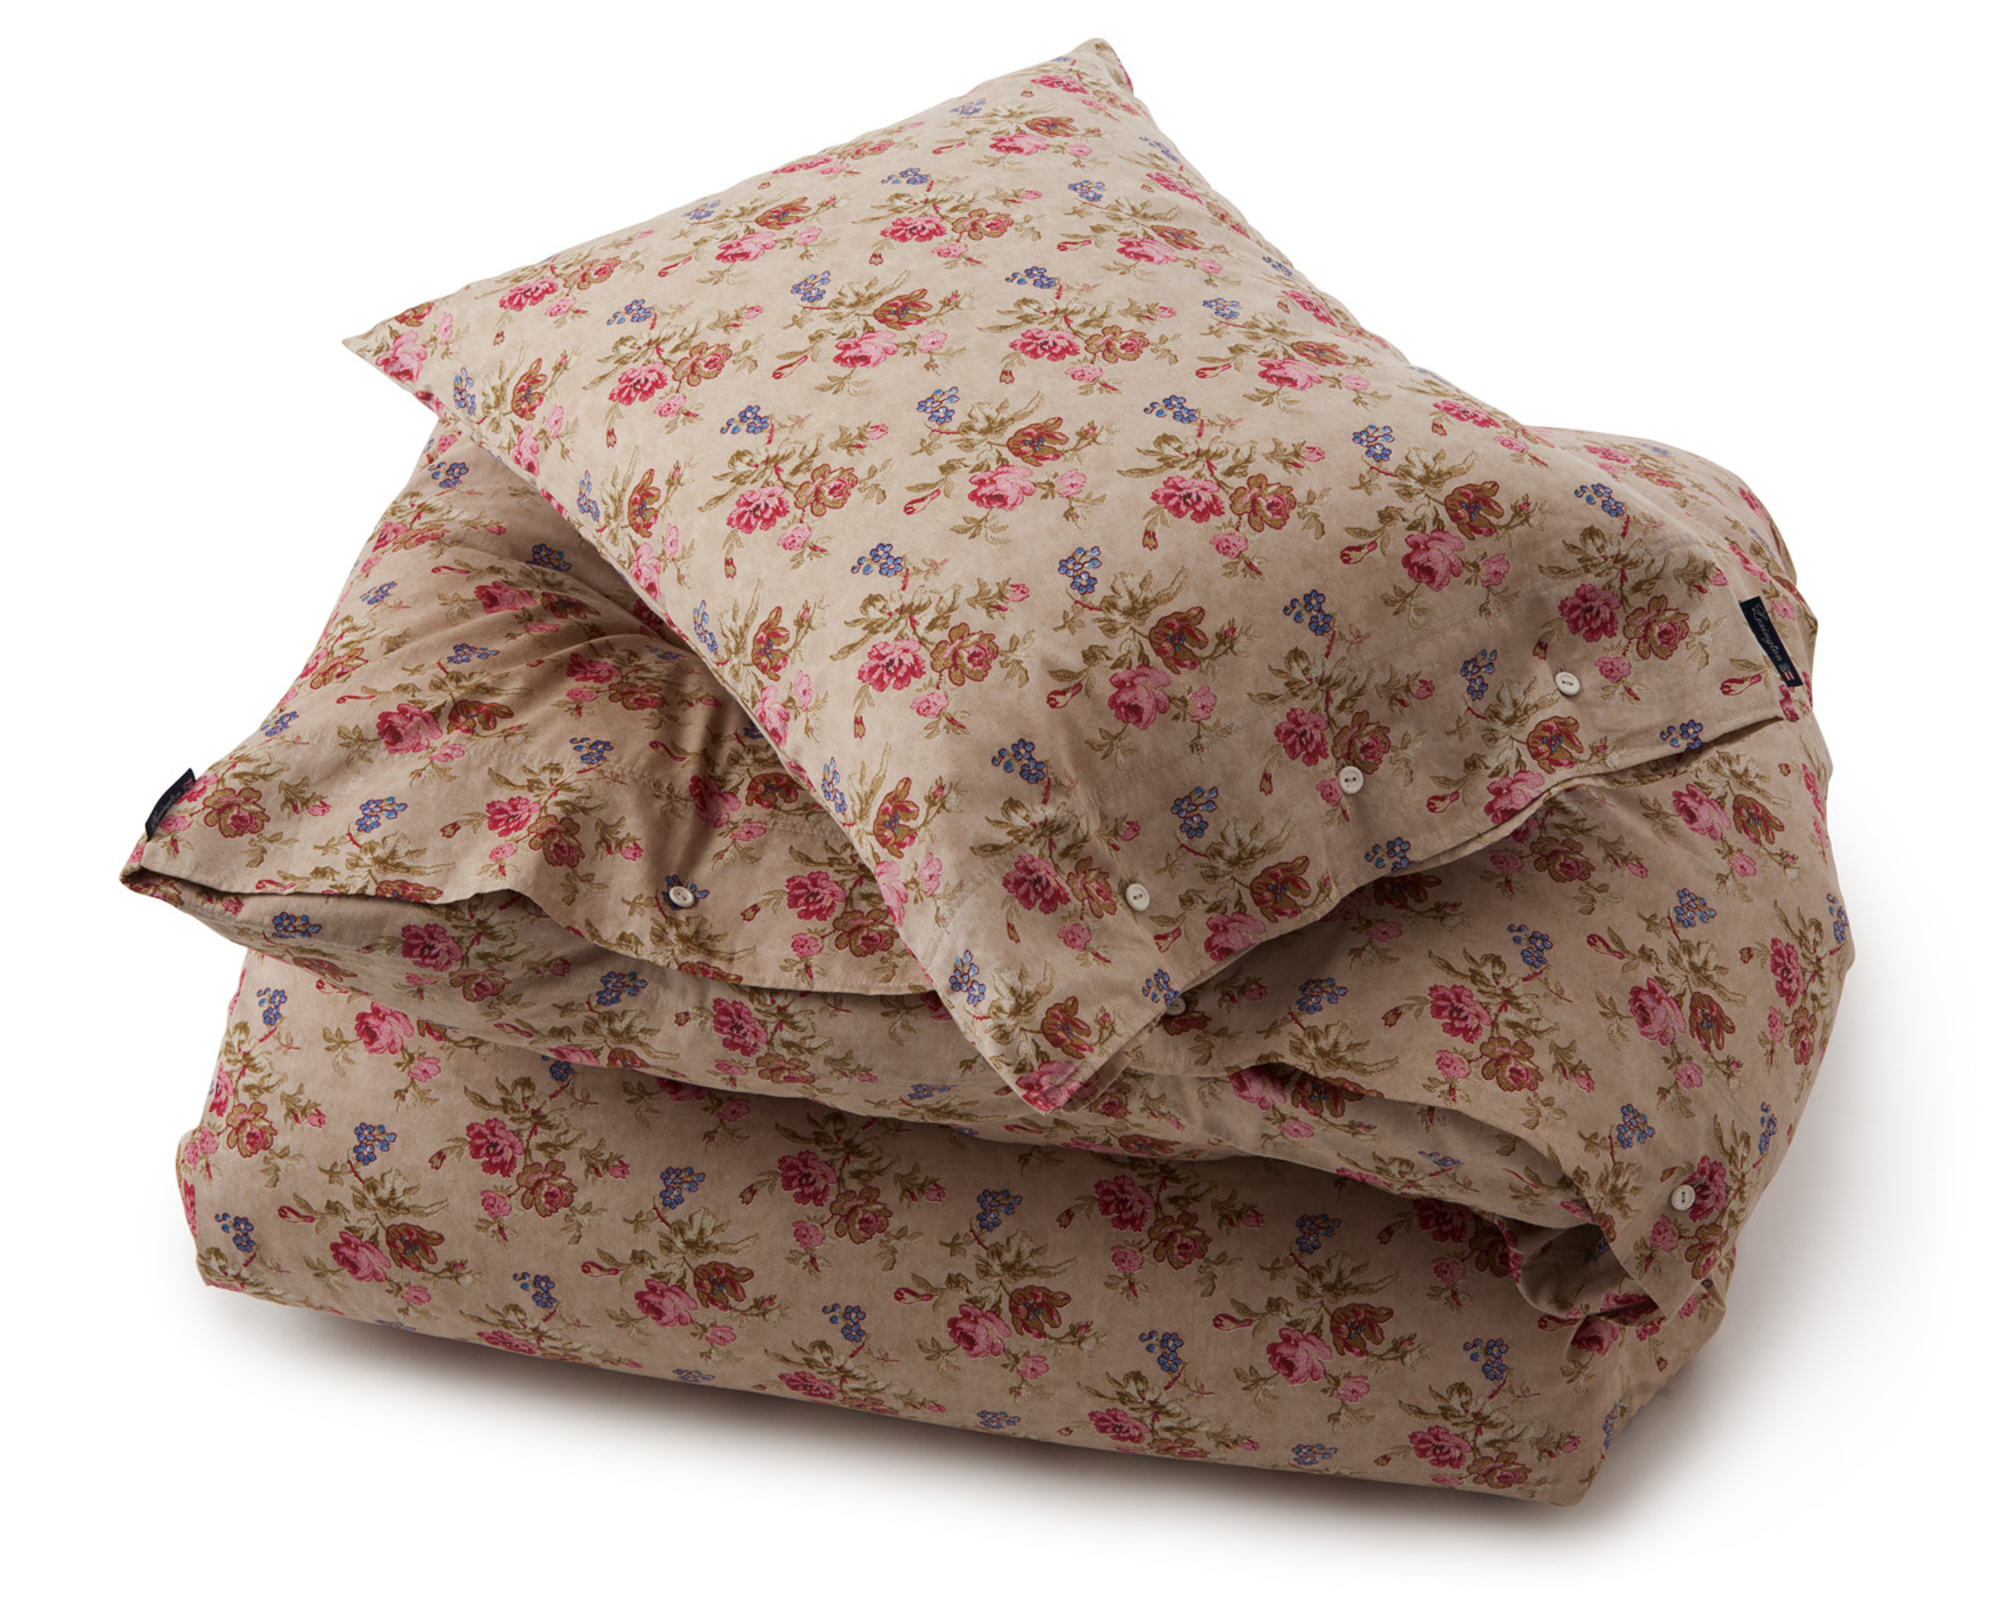 City Floral Sateen Duvet